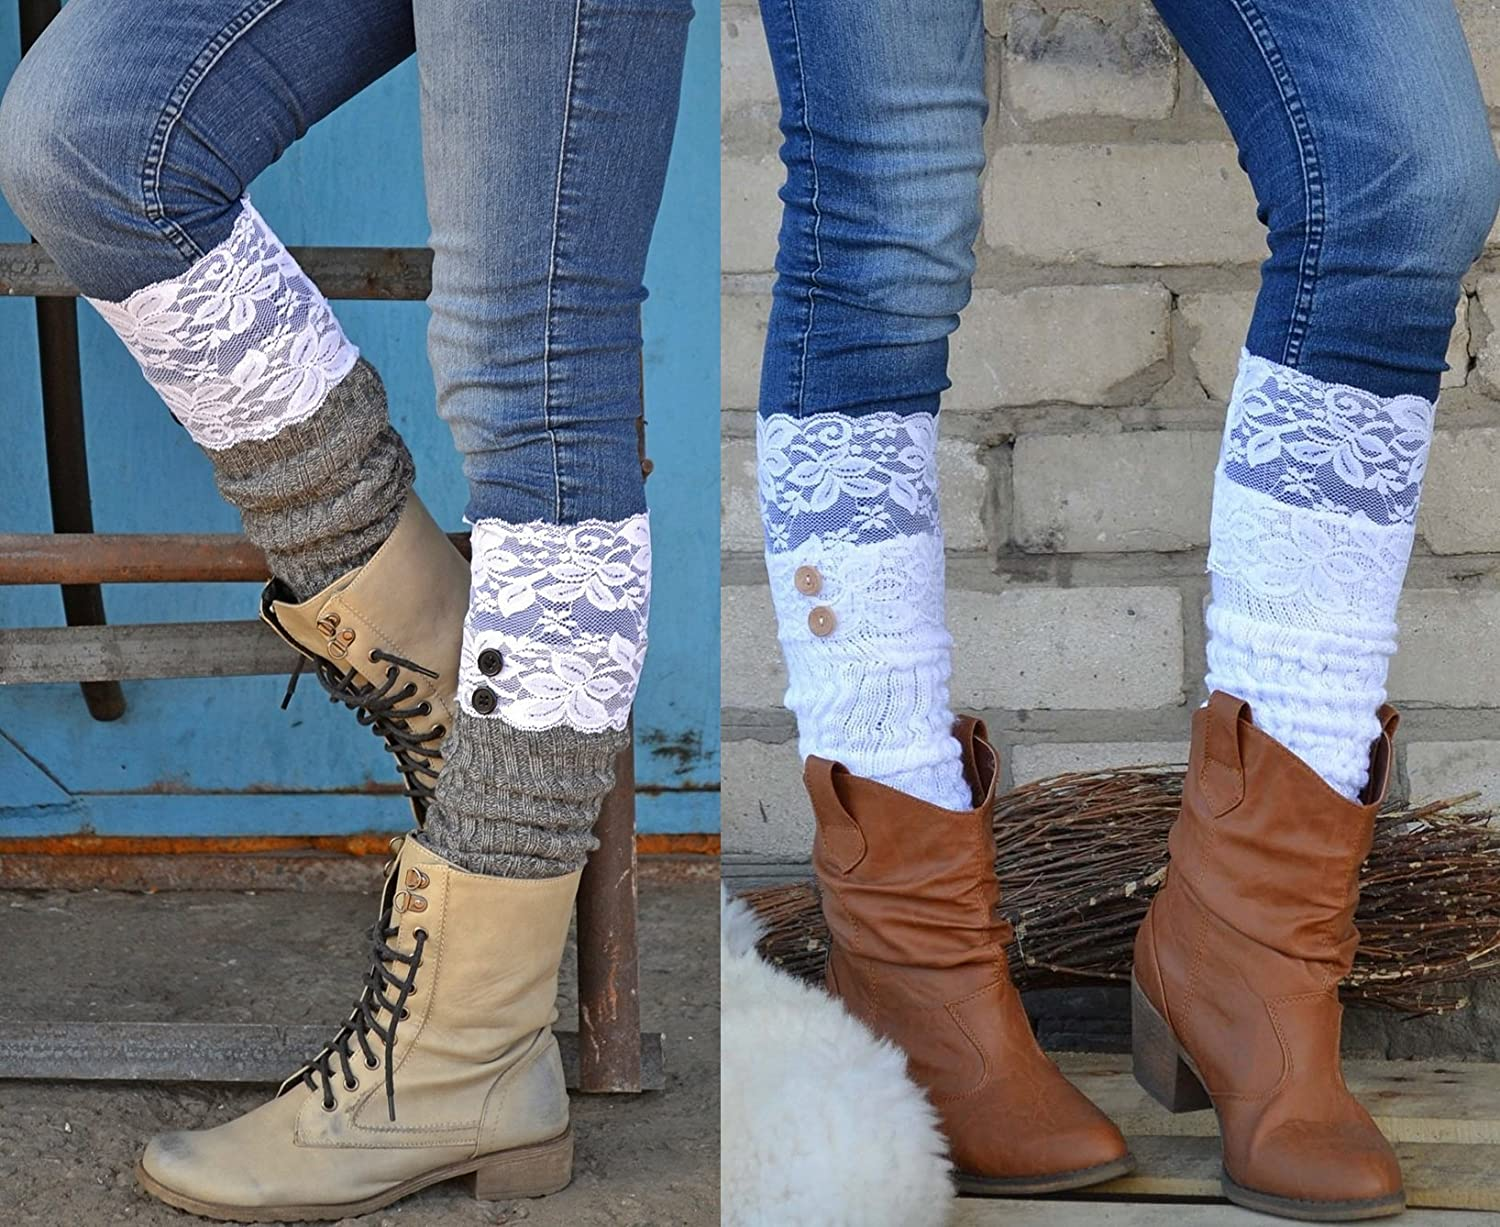 fff17ee2c Button-Down White Sweater Boot Cuff with lace for Women Lovely and cute  Cozy Cuffs for your boots! A perfect in cold Autumn   Winter months!